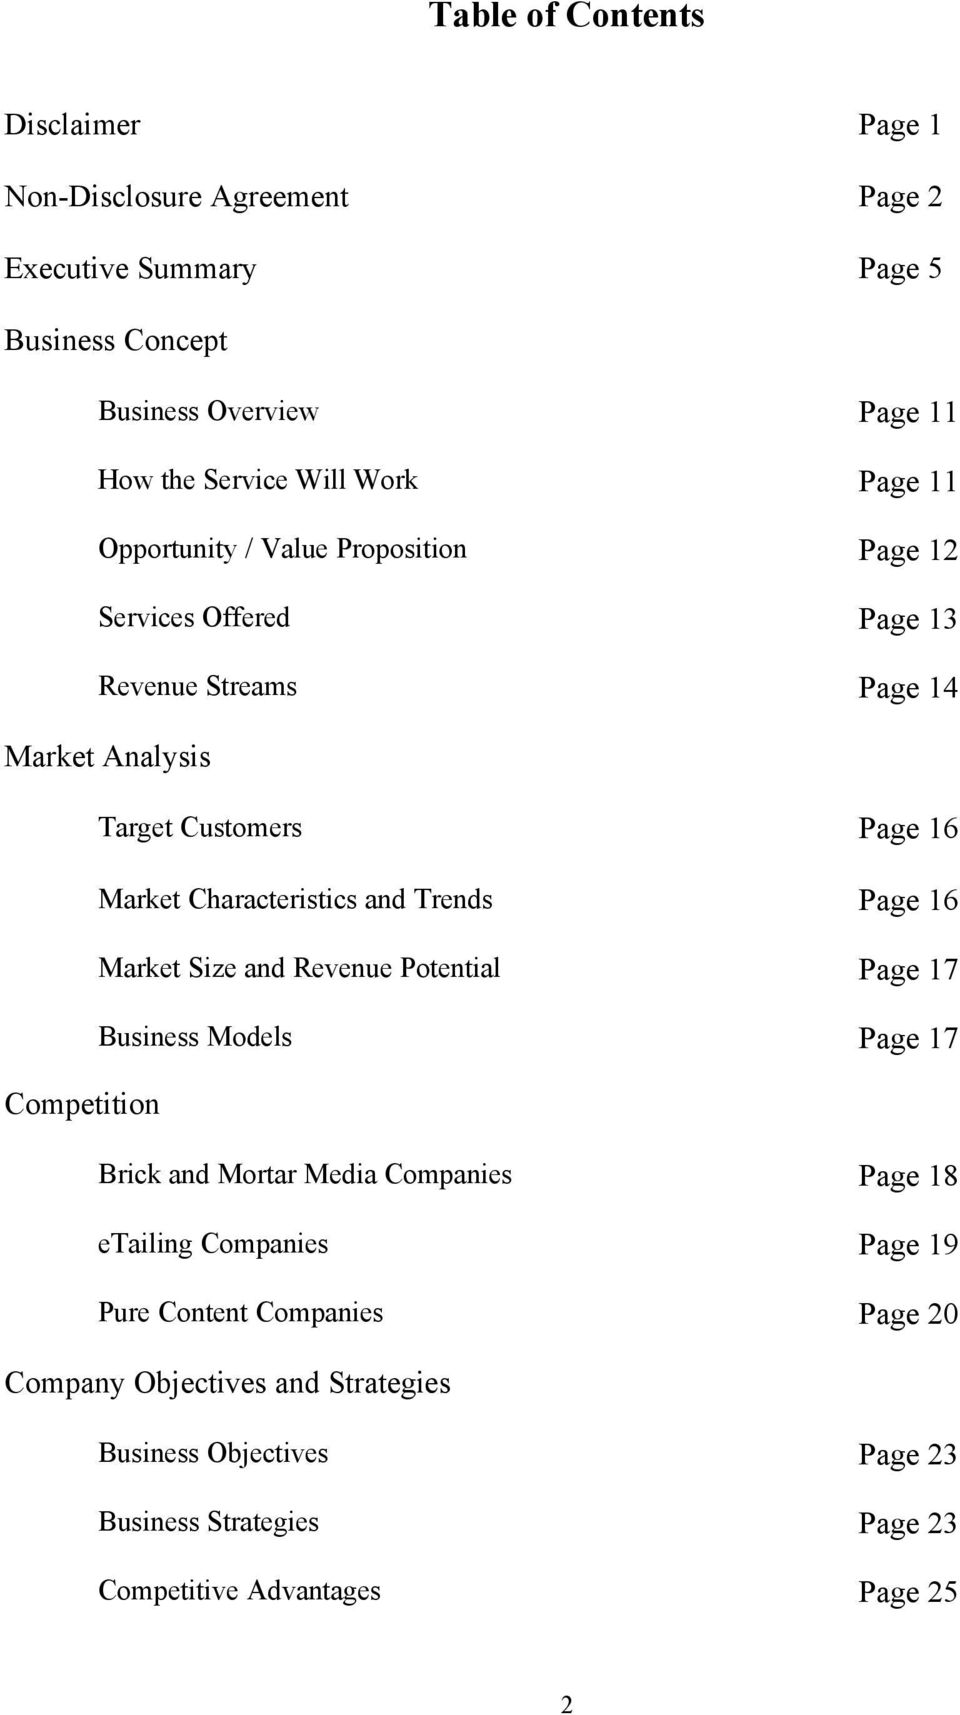 Characteristics and Trends Page 16 Market Size and Revenue Potential Page 17 Business Models Page 17 Competition Brick and Mortar Media Companies Page 18